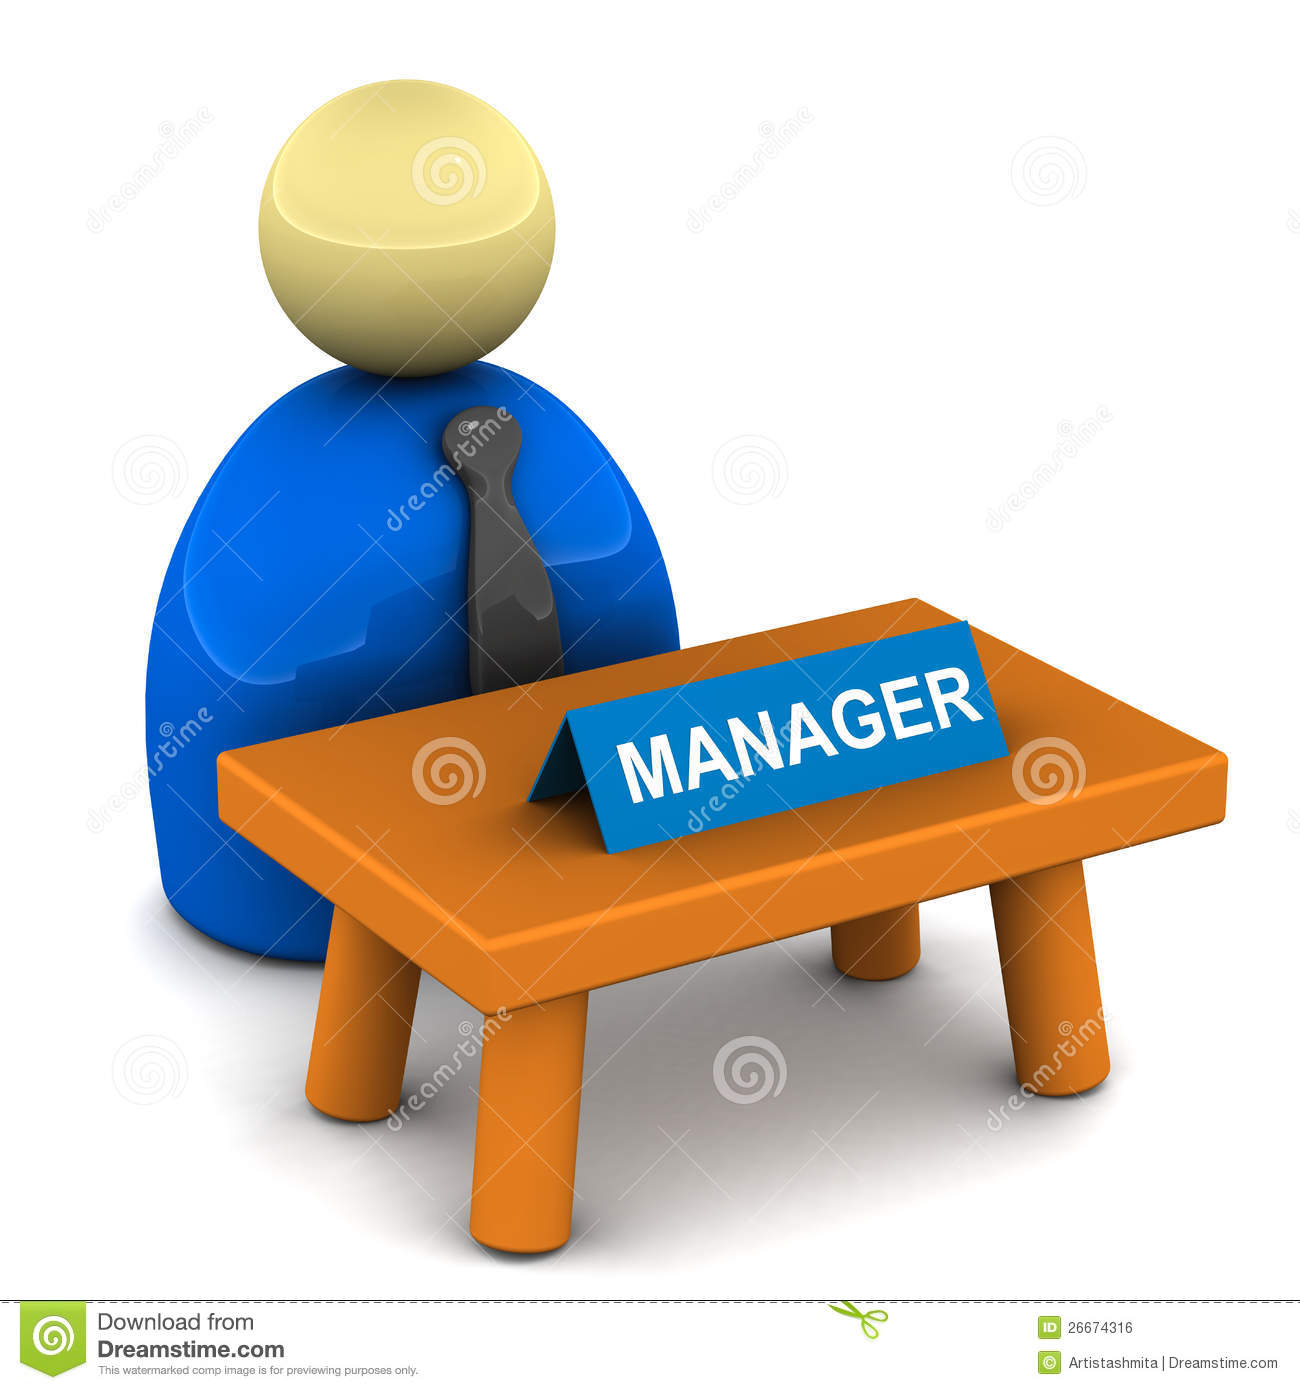 managers background Get business administration and management industry background information to gain a better understanding of what it is like to work within this career field.